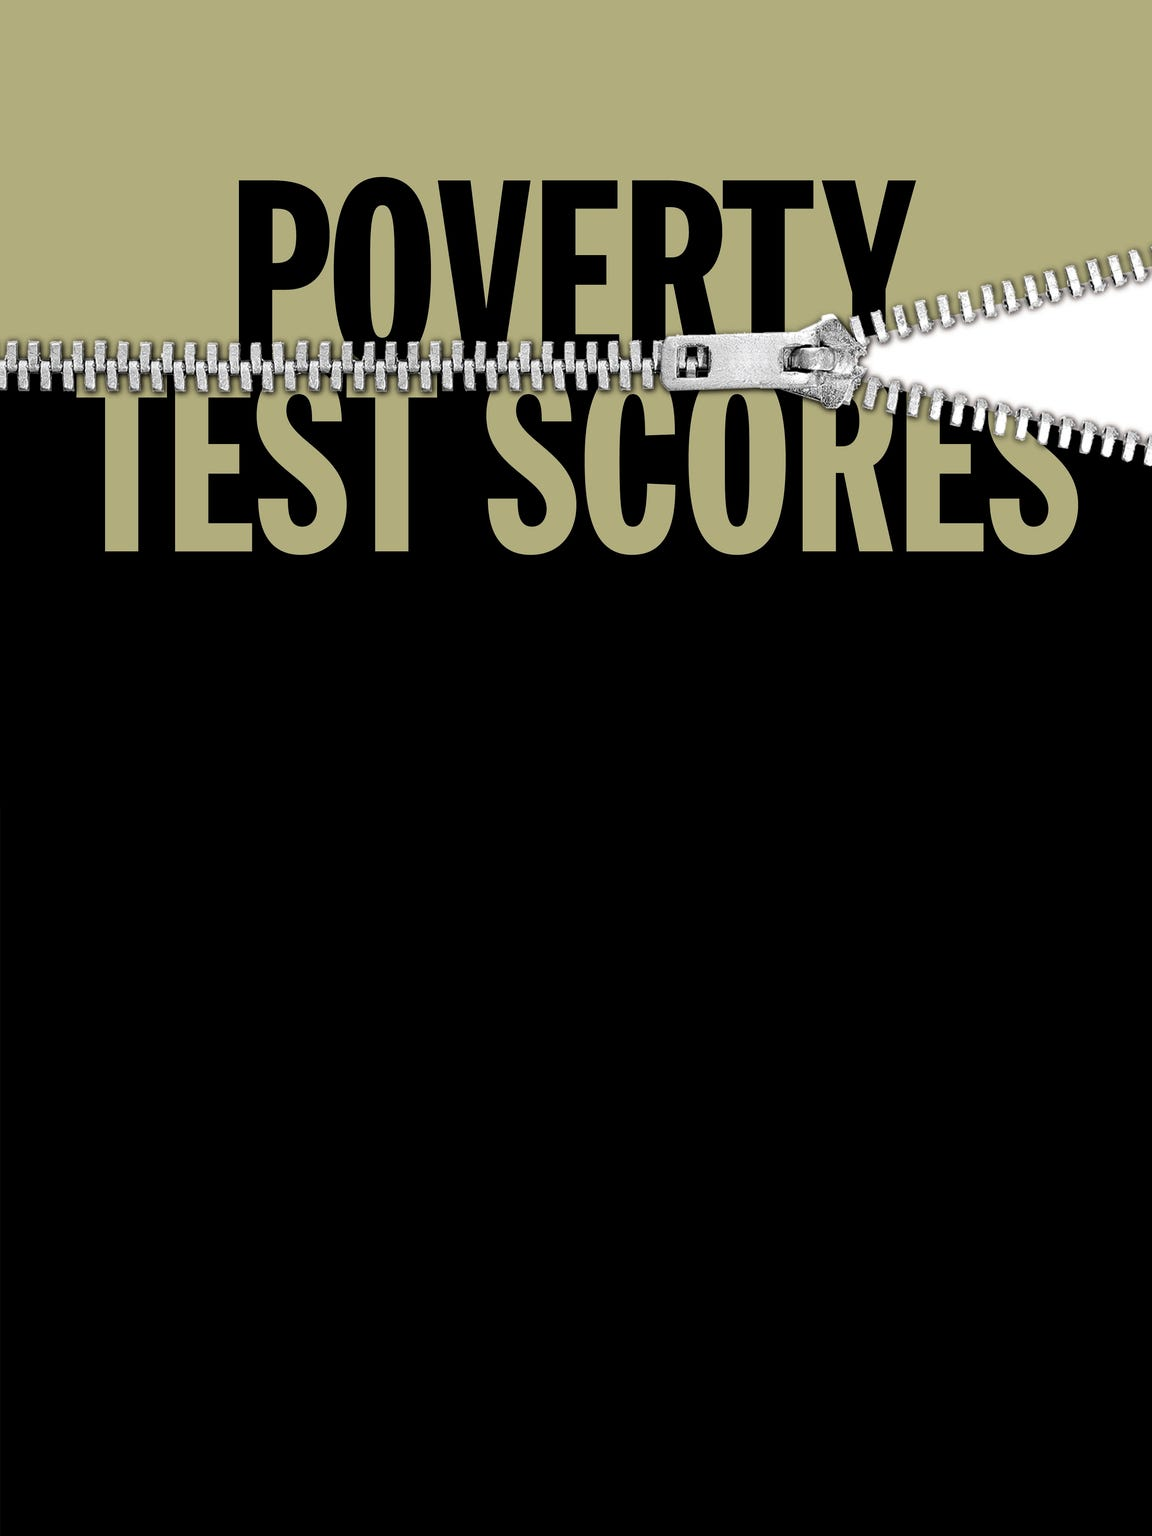 Poverty test scores illustration